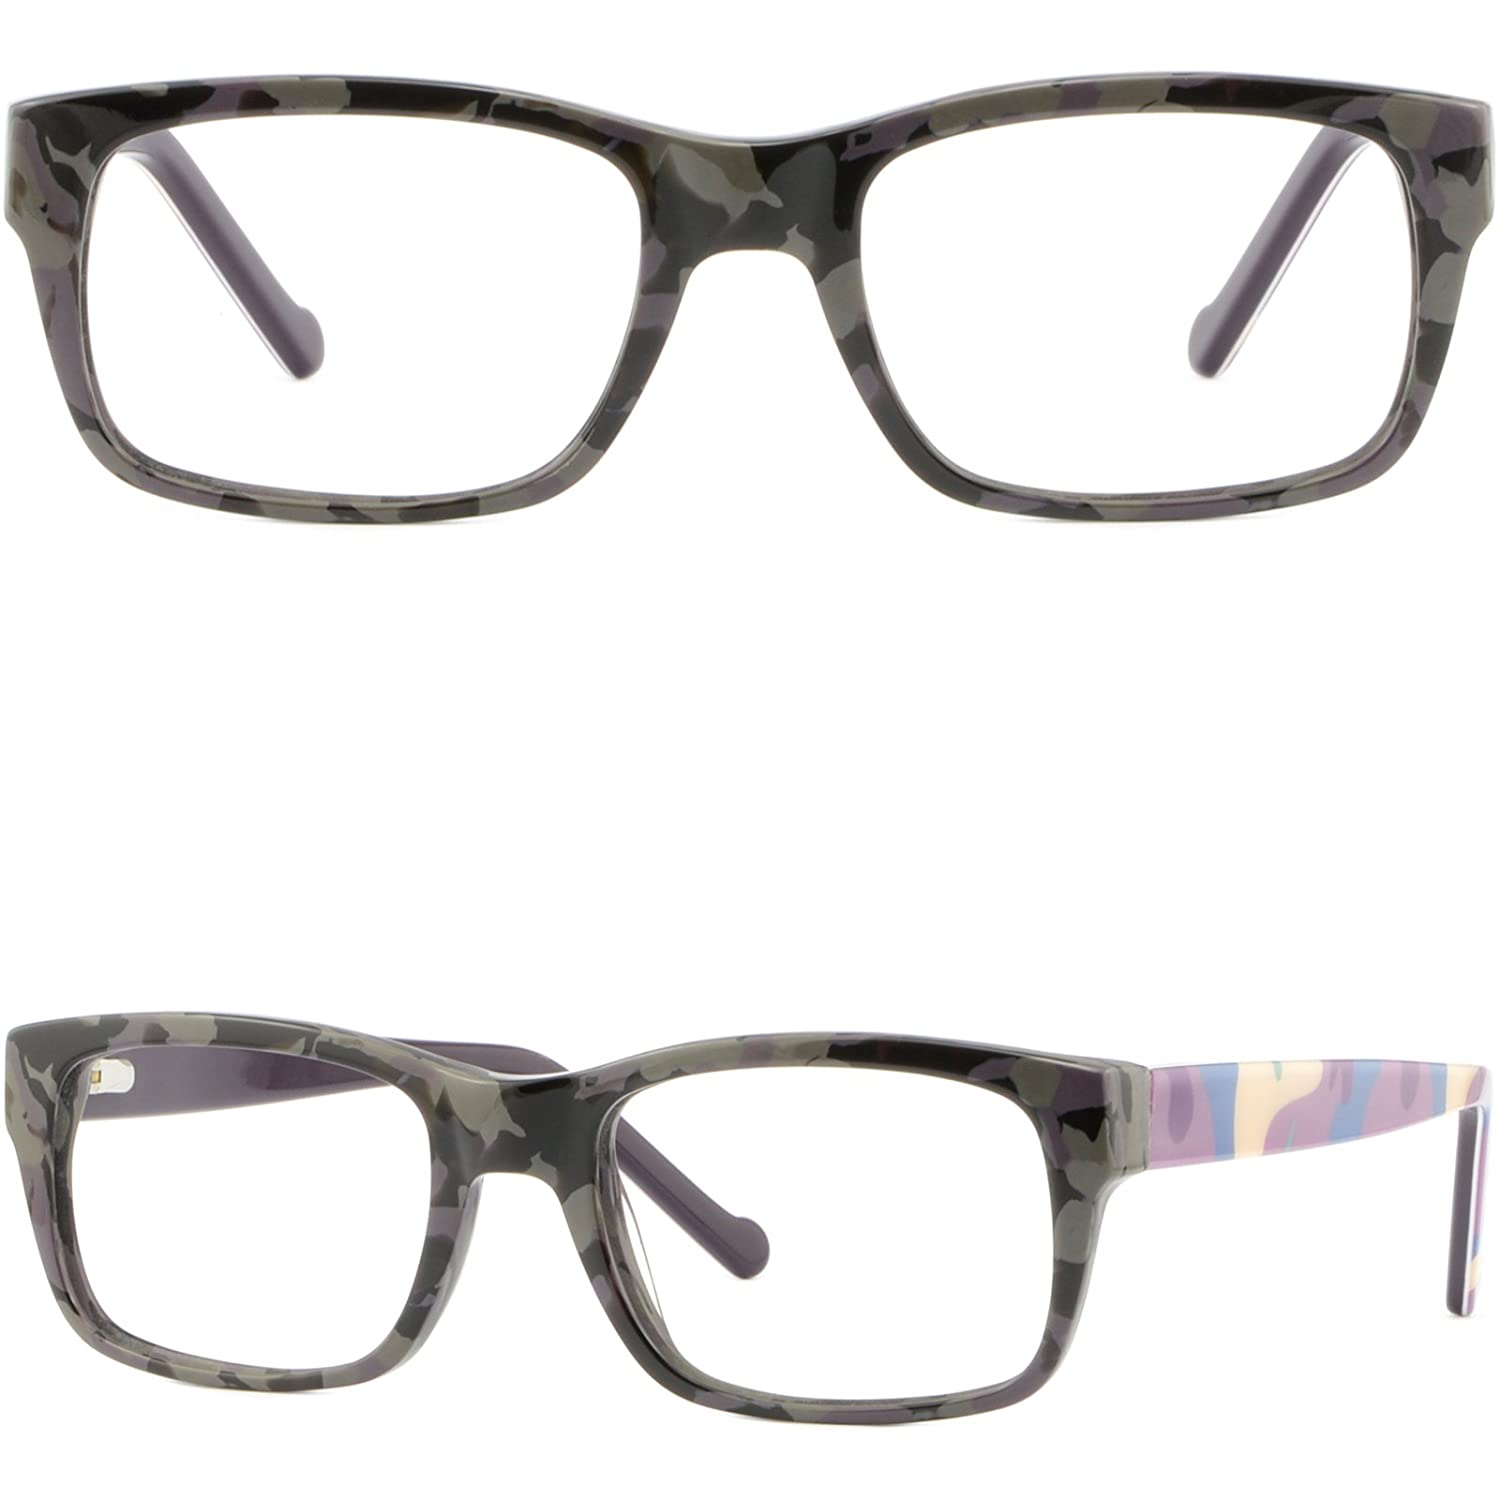 4475af5691936 Amazon.com  Rectangle Women Frame Thick Strong Prescription Glasses Spring  Hinges Black Gray  Clothing